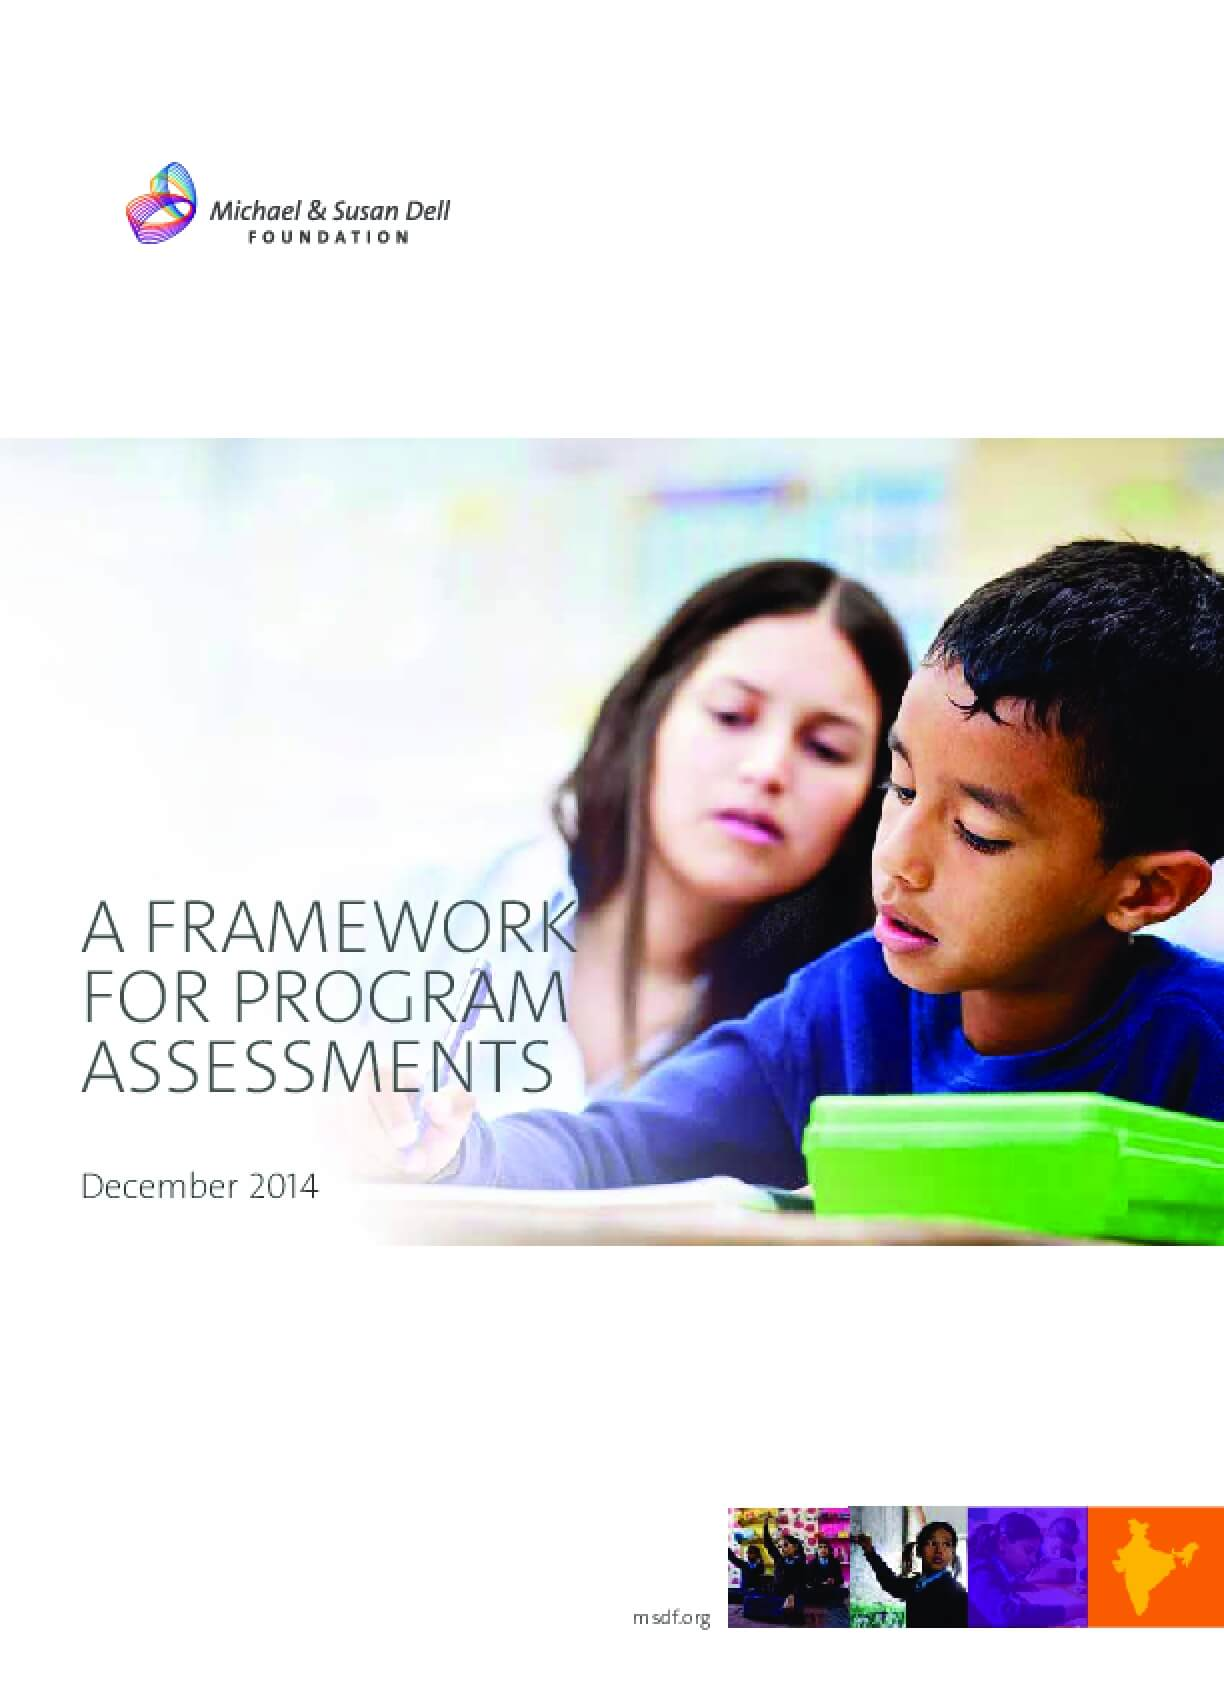 Framework for Program Assessments